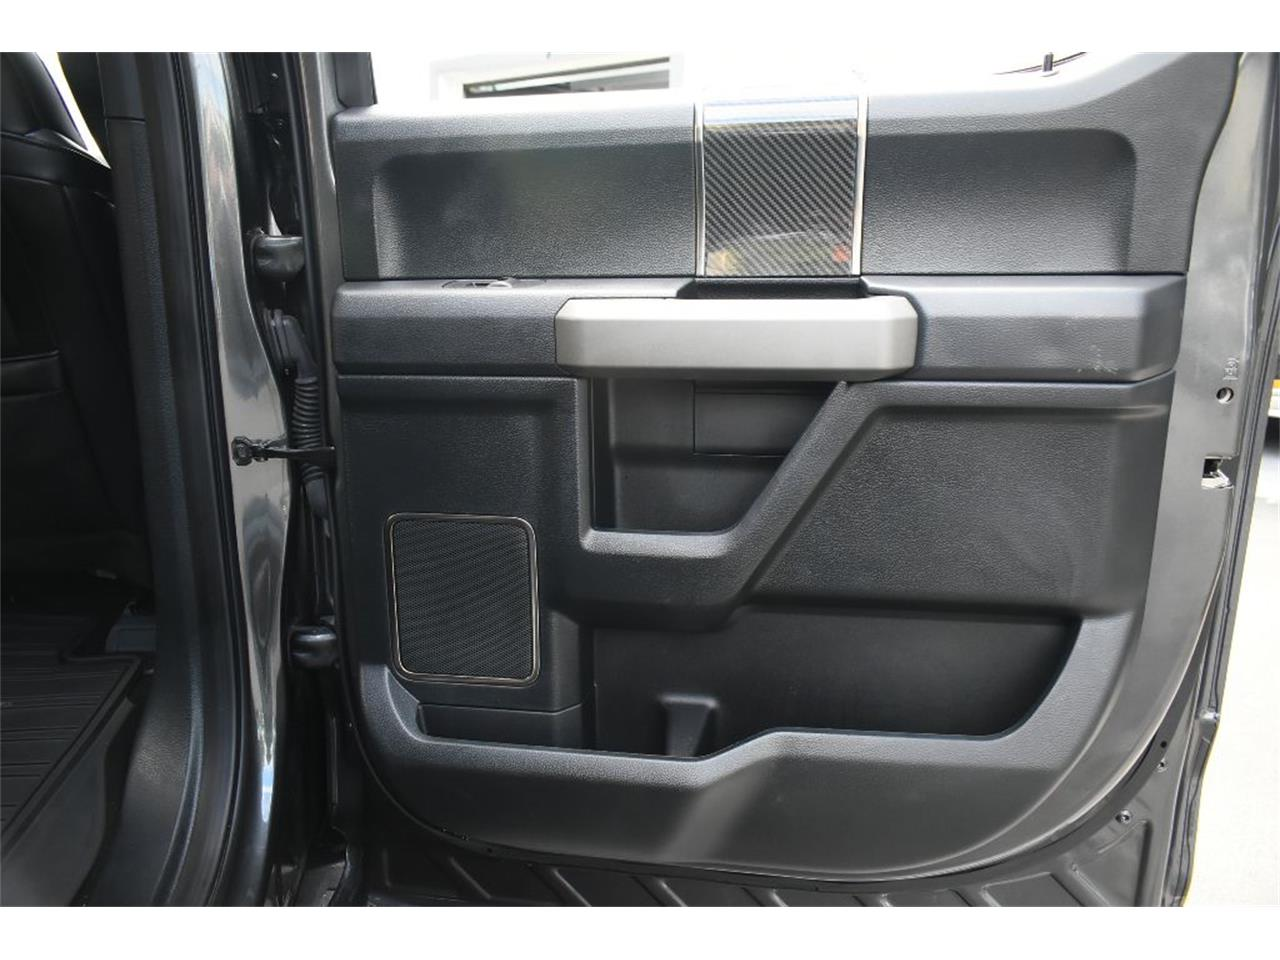 2020 Ford F150 (CC-1420038) for sale in Boca Raton, Florida